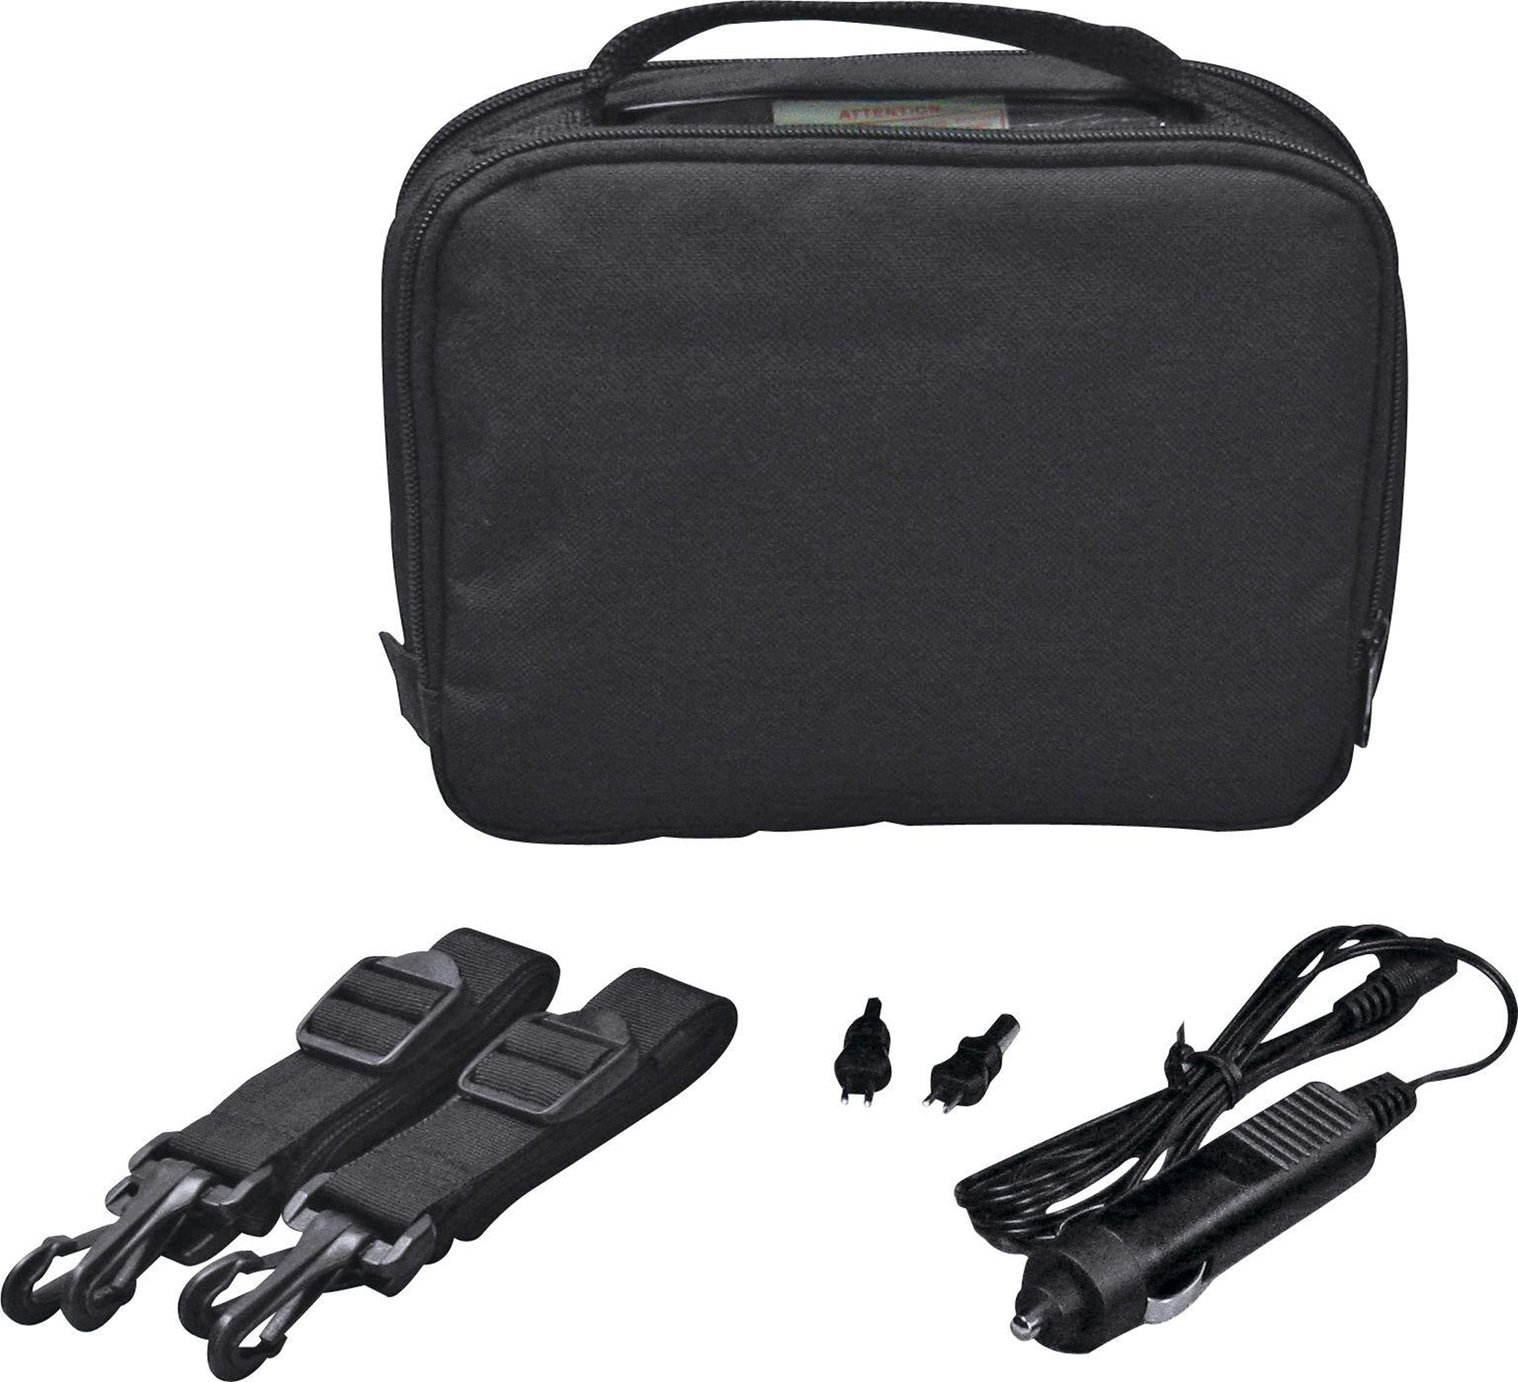 7 Inch - Gadget Bag with - Car Charger - Black